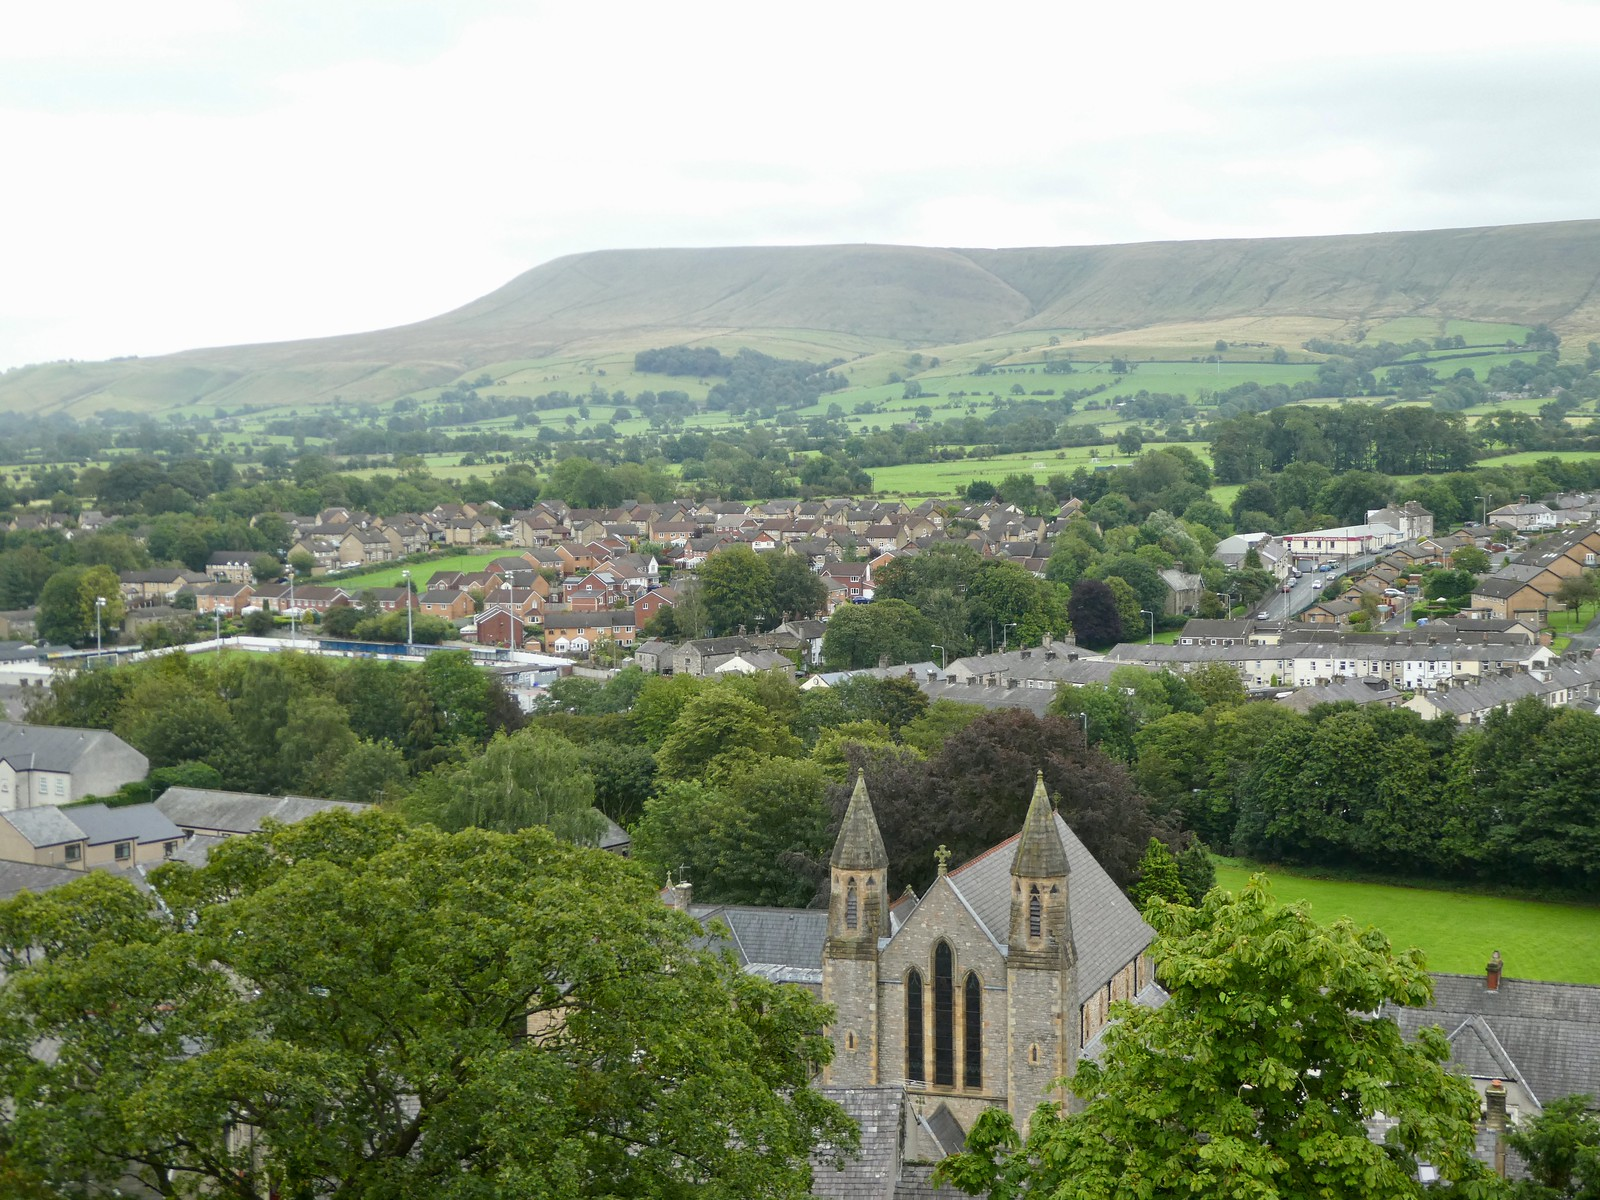 Views over to Pendle Hill from Clitheroe Castle Keep